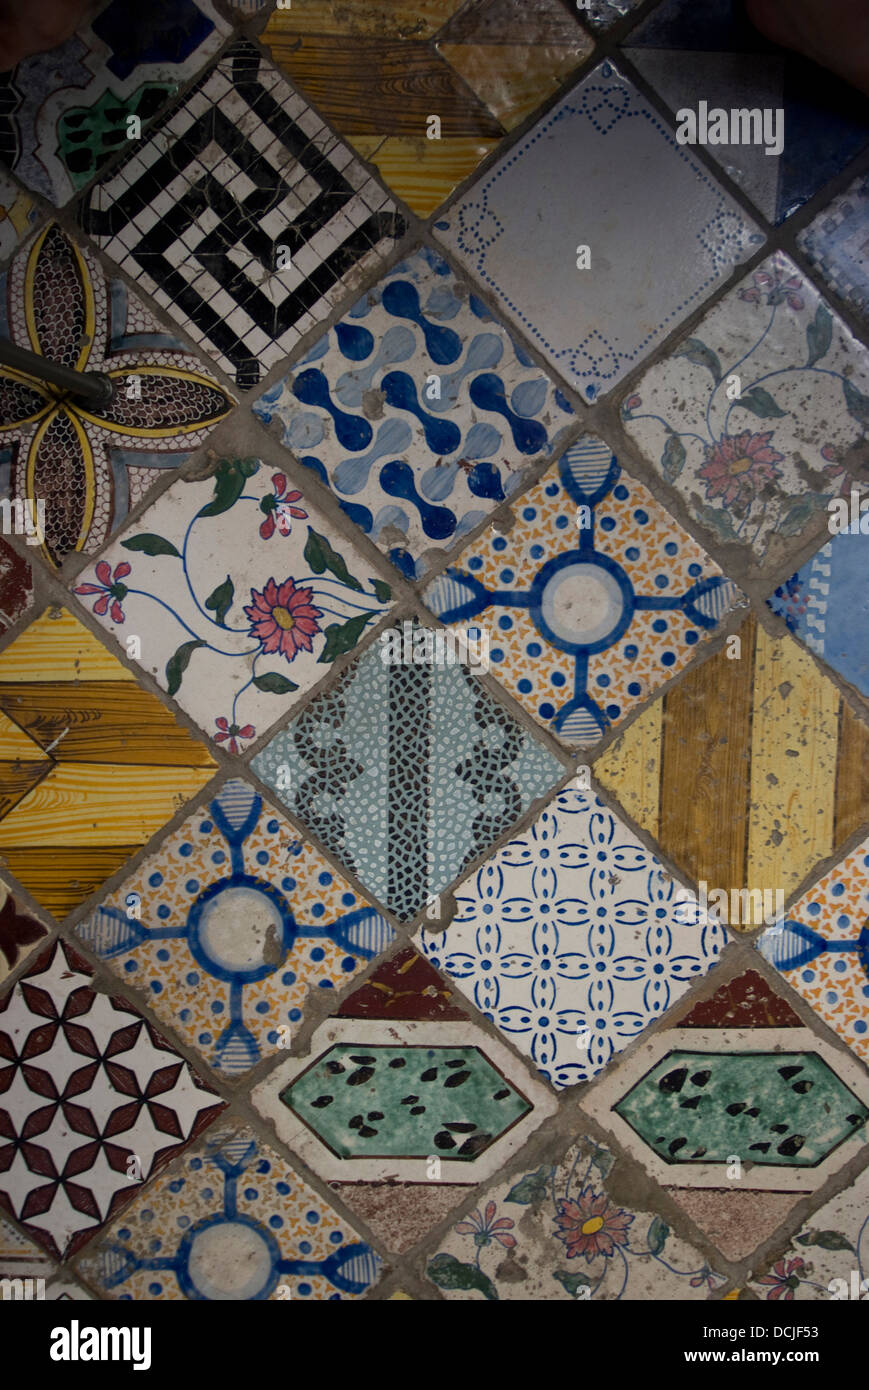 Italian Floor Tiles Stock Photos & Italian Floor Tiles Stock Images ...